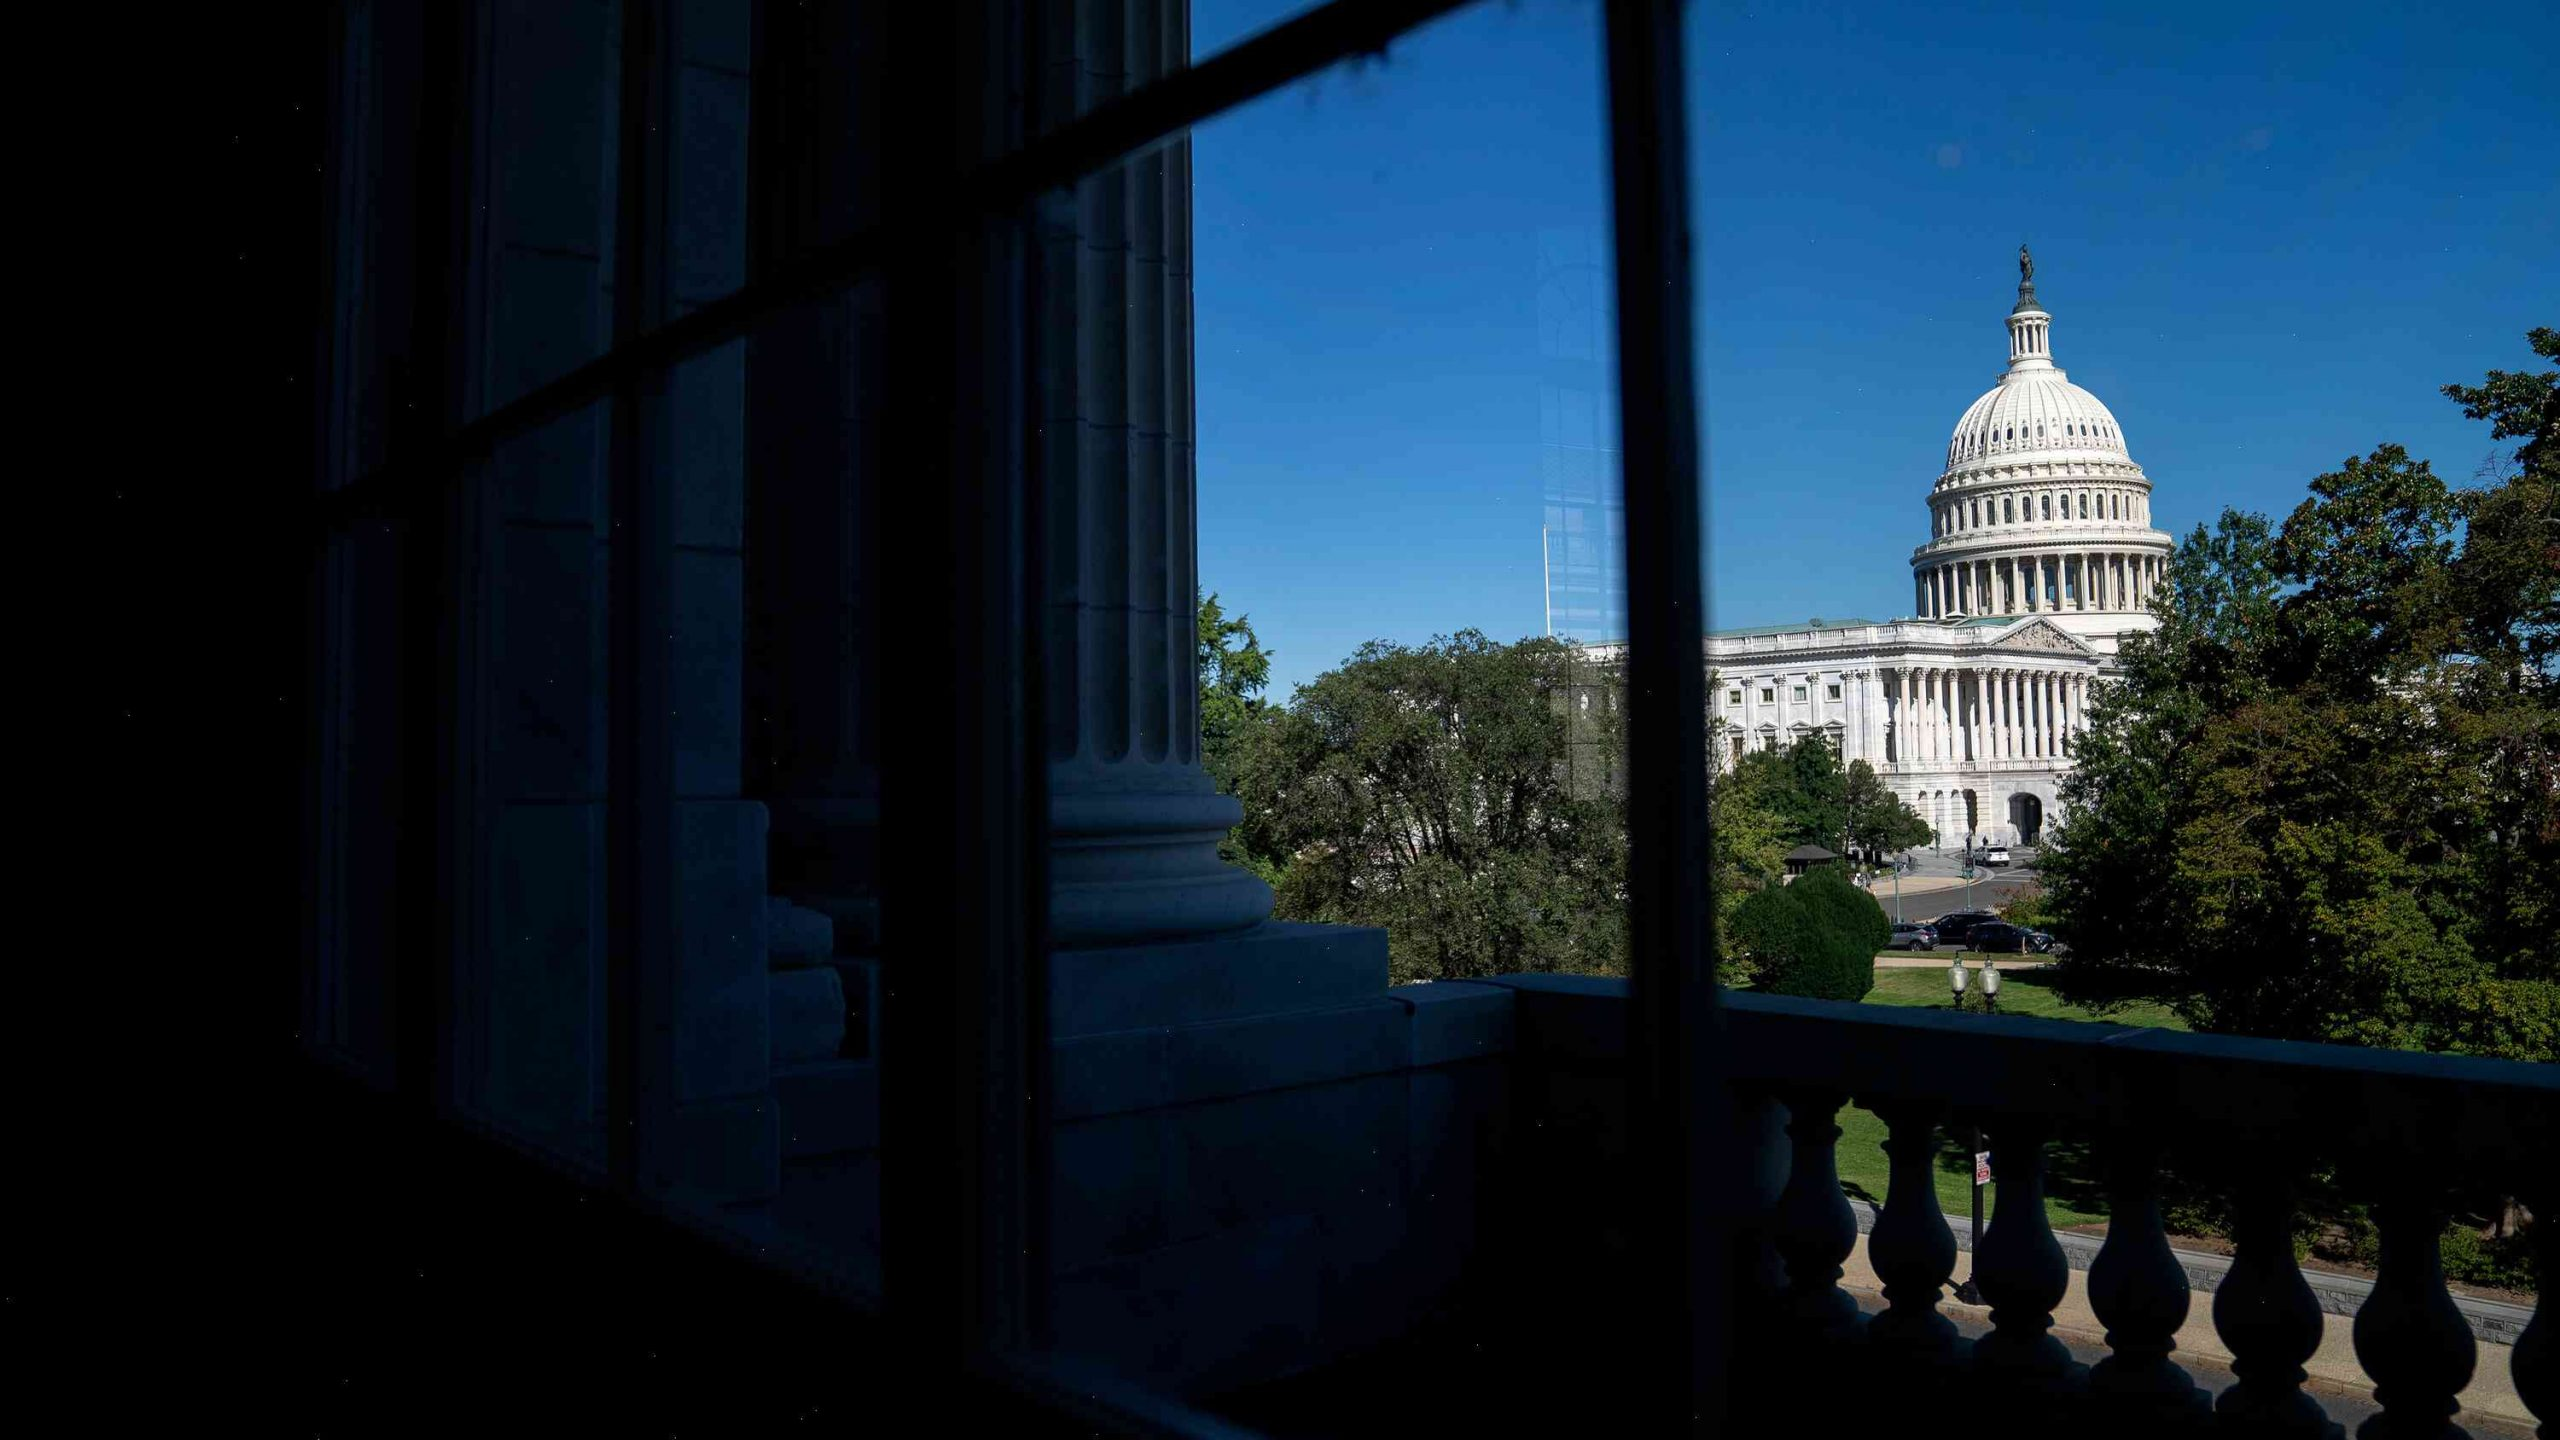 Debt ceiling: what it is, why it matters and how to understand its significance